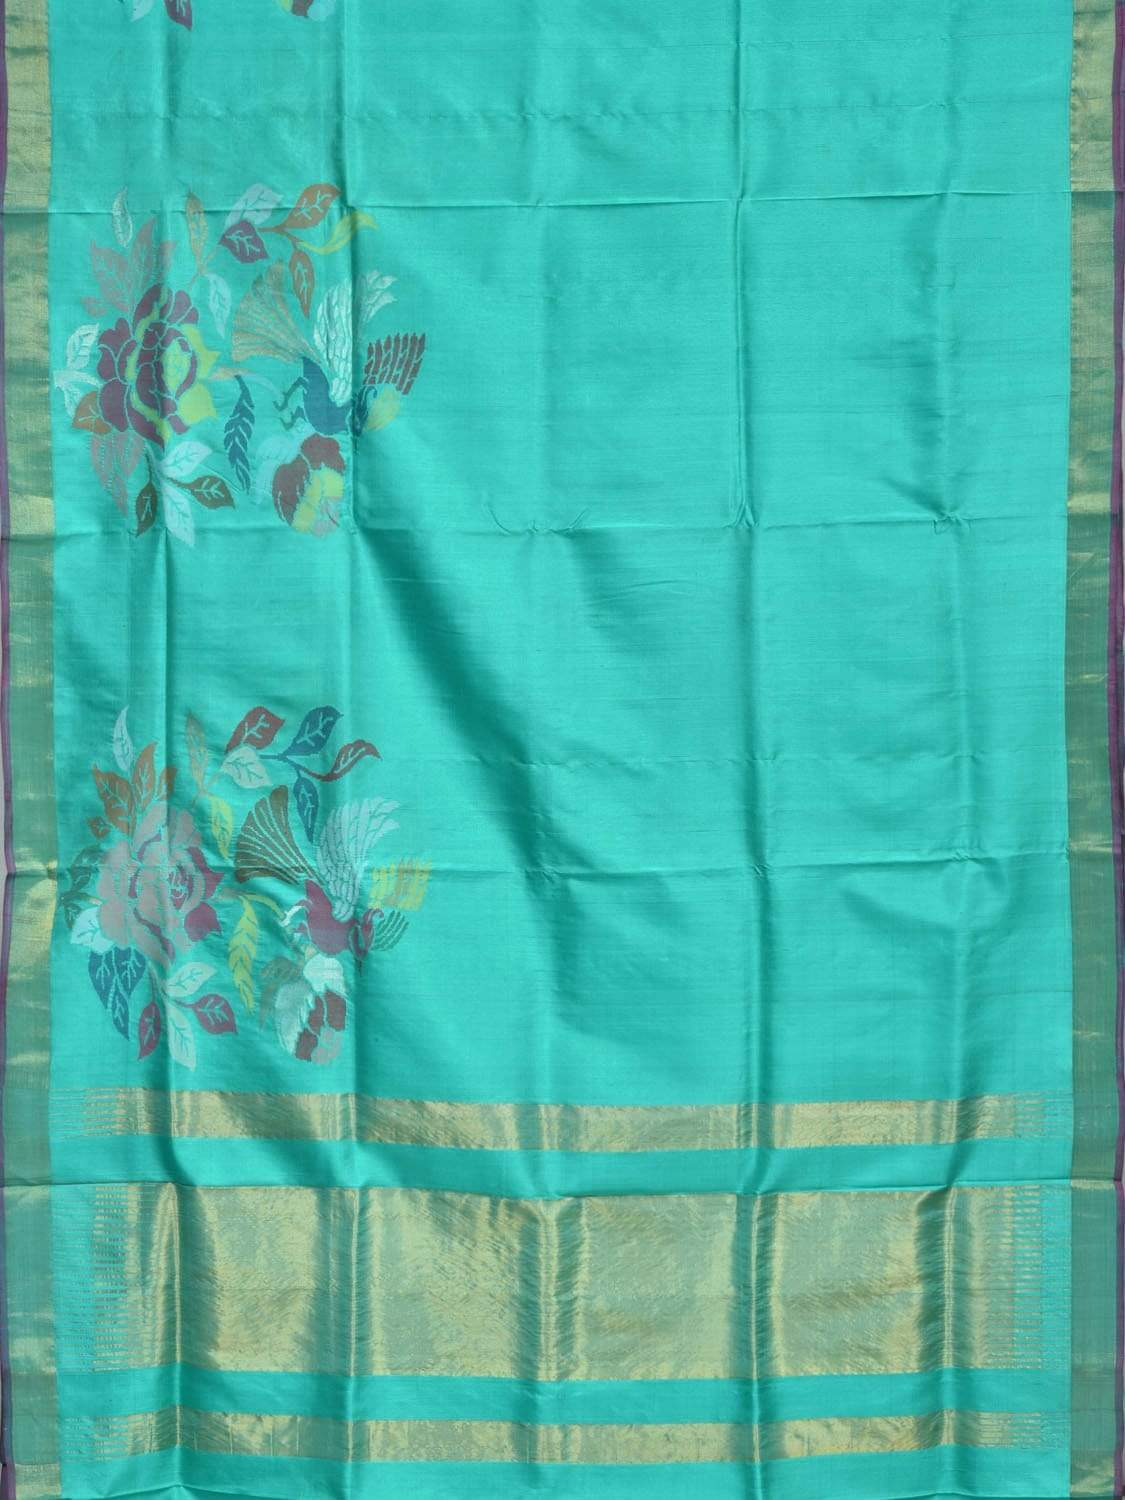 Turquoise Uppada Silk Handloom Saree with One Side Flower and Bird Border Design u1552